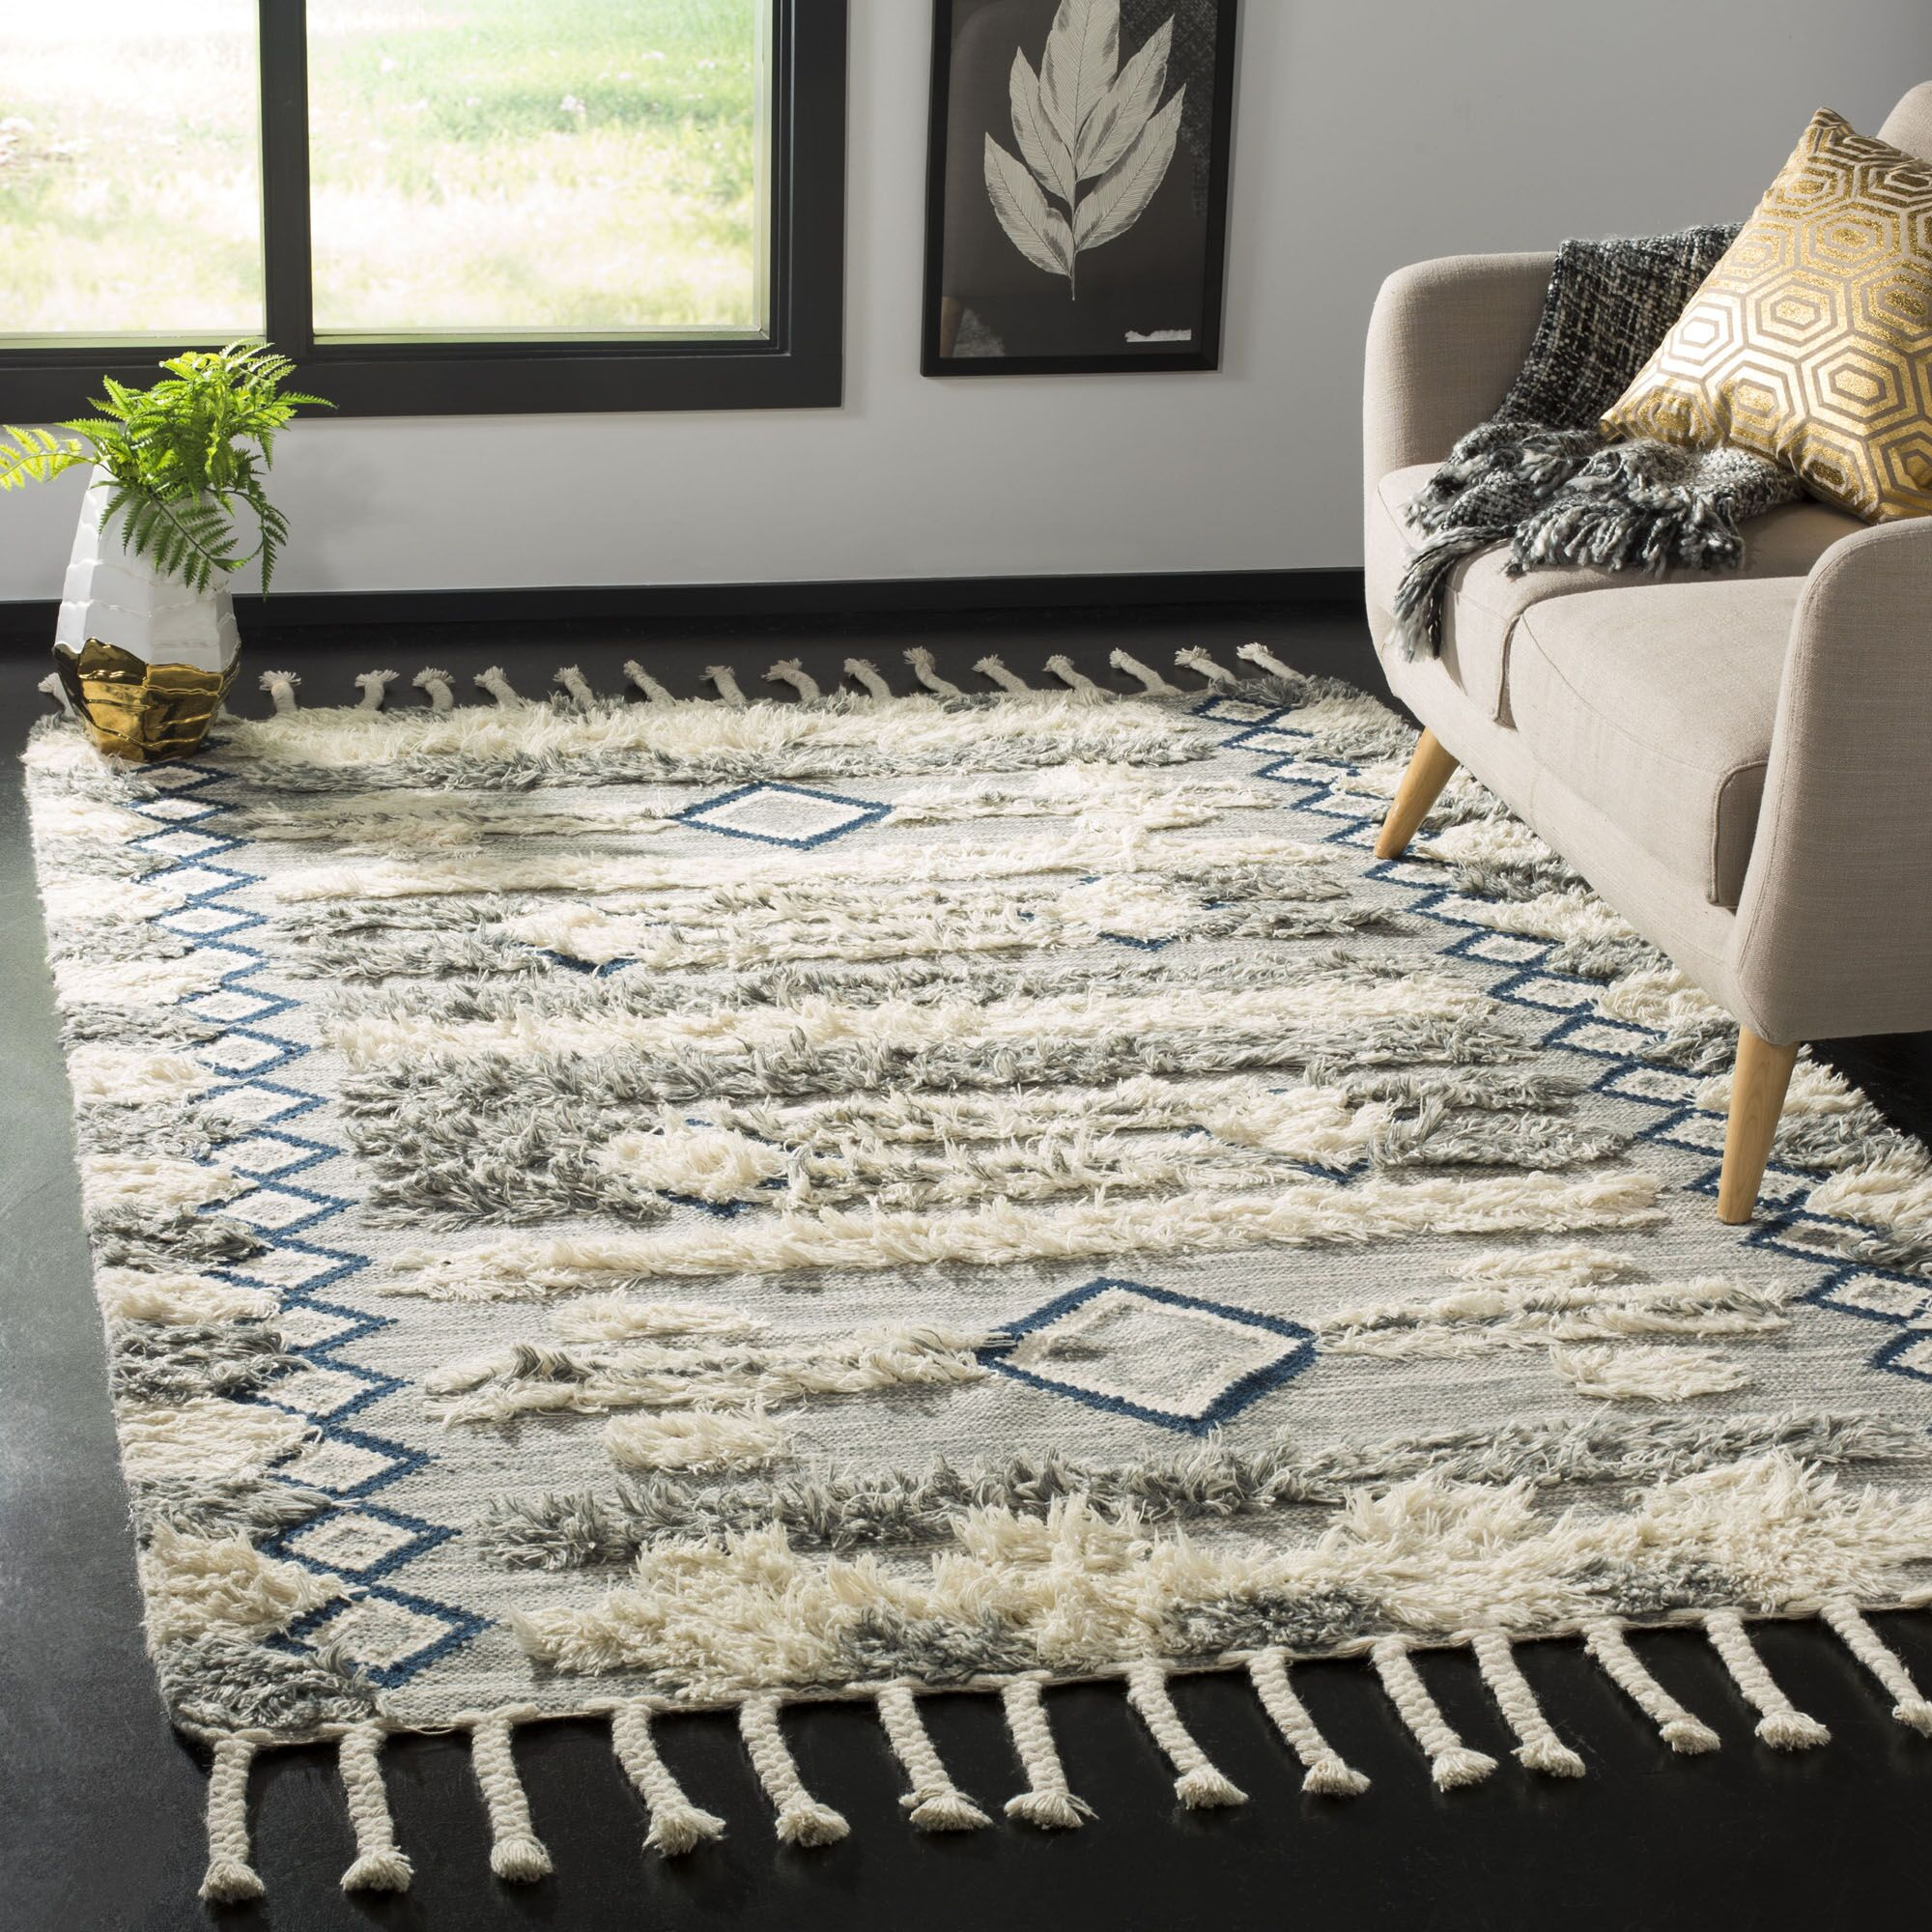 Cedar Drive Hand-Knotted Gray/Ivory Area Rug Rug Size: Rectangle 4' x 6'